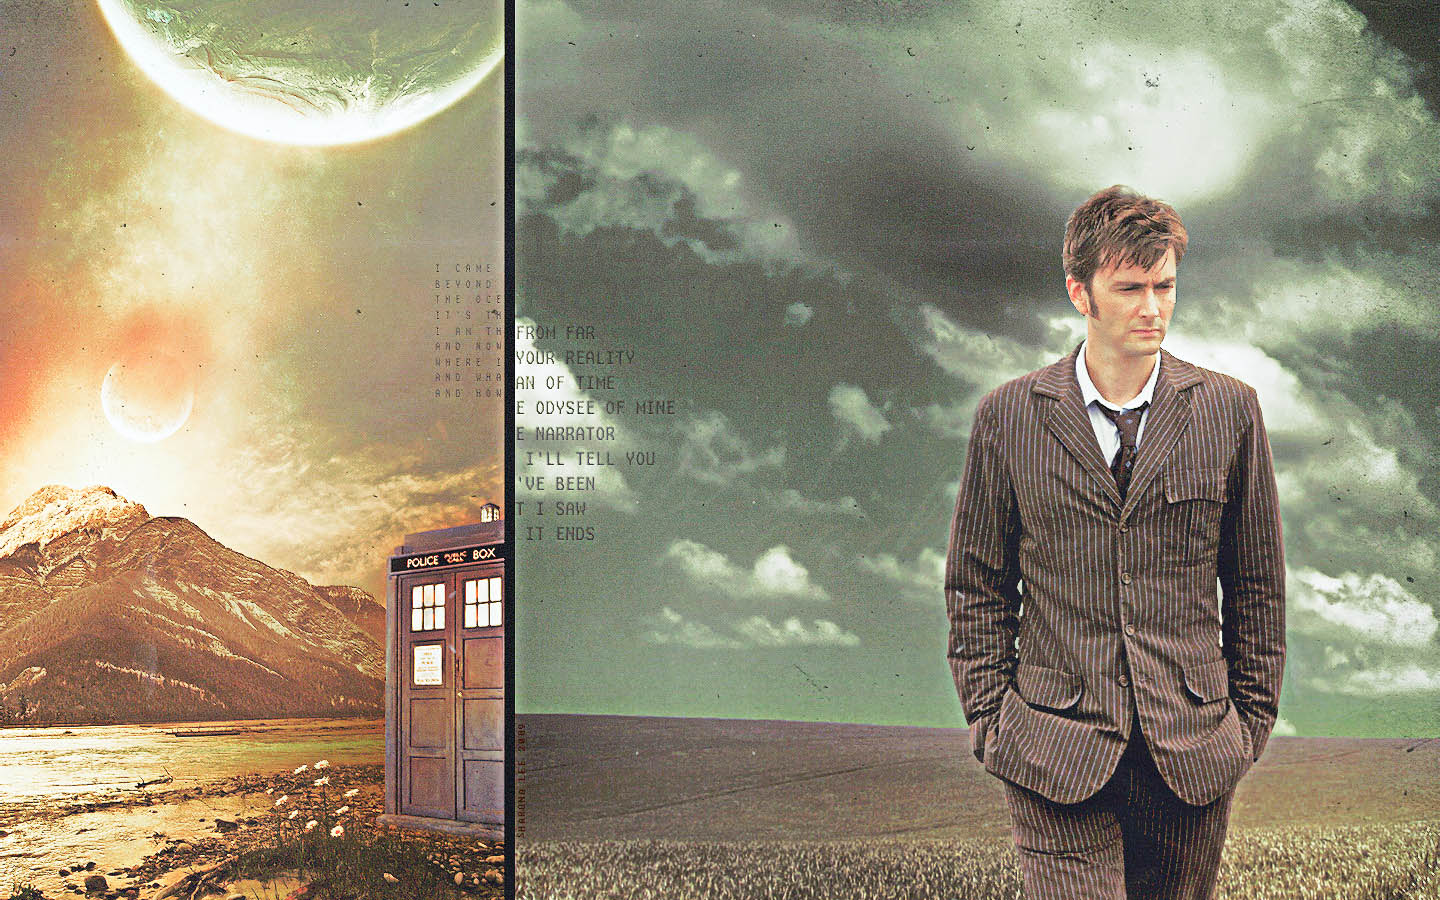 Smart Phone Wallpapers Girls Doctor Who Tv Show New High Resolution Wallpapers All Hd